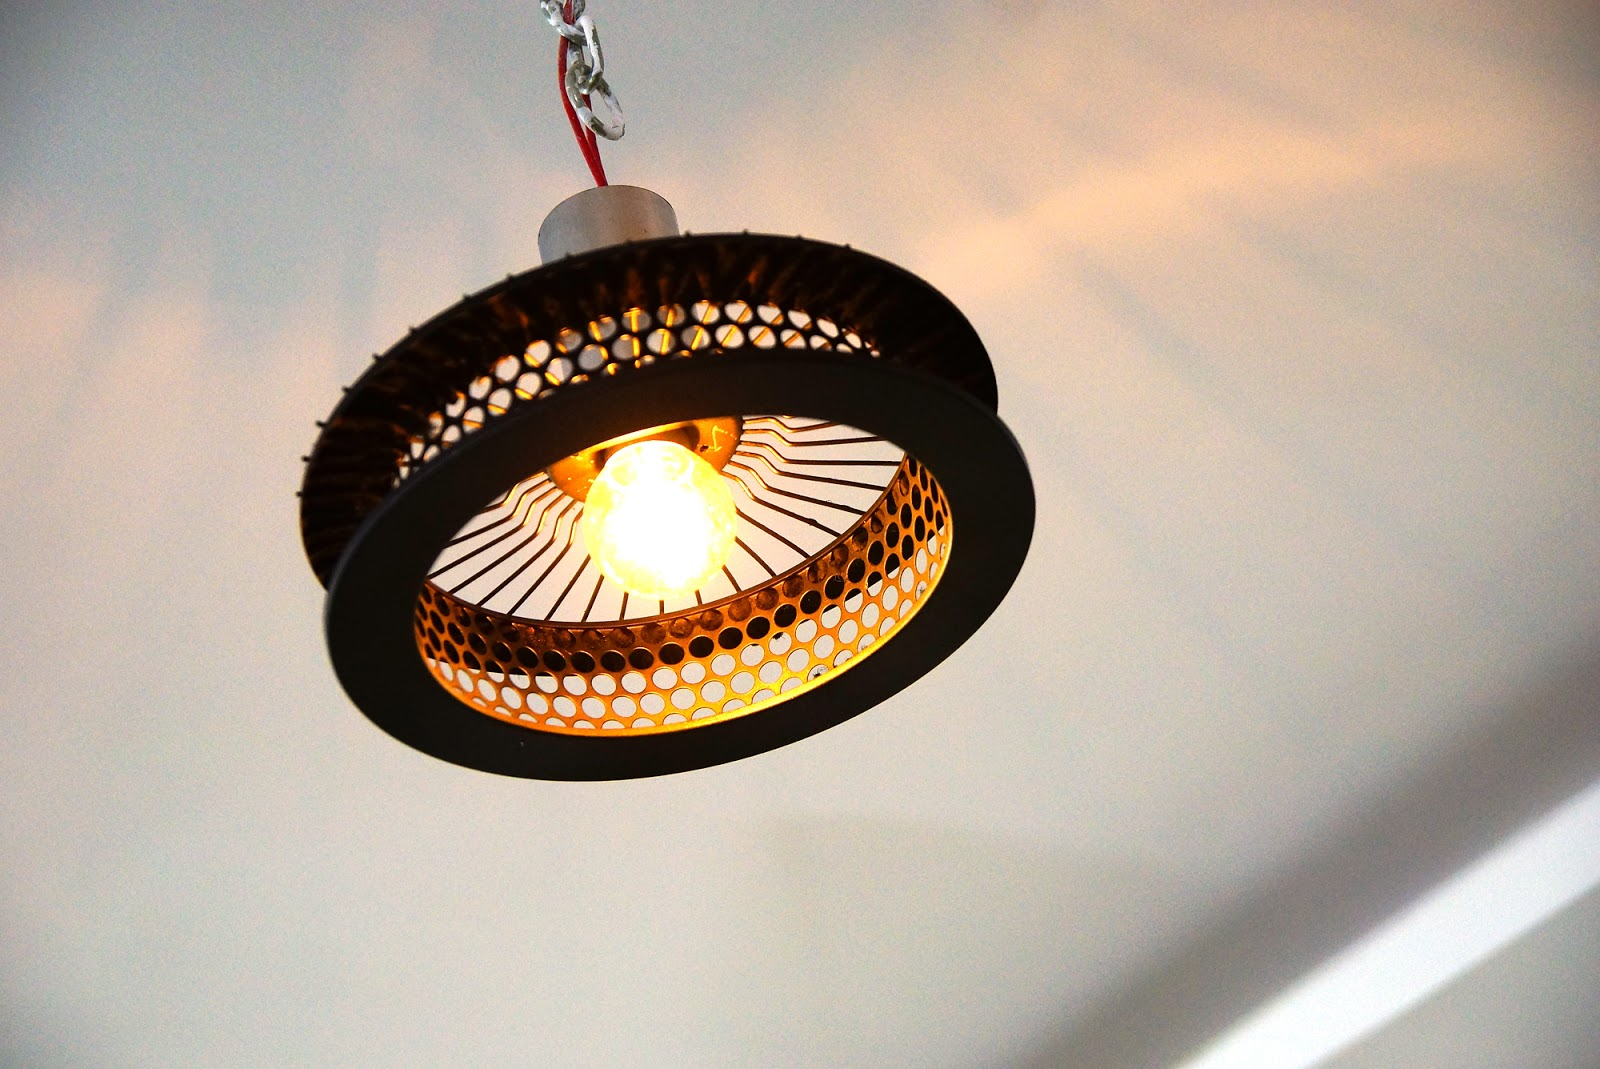 Aziz siddiqui diy ceiling light from car air filter for Homemade ceiling lamp